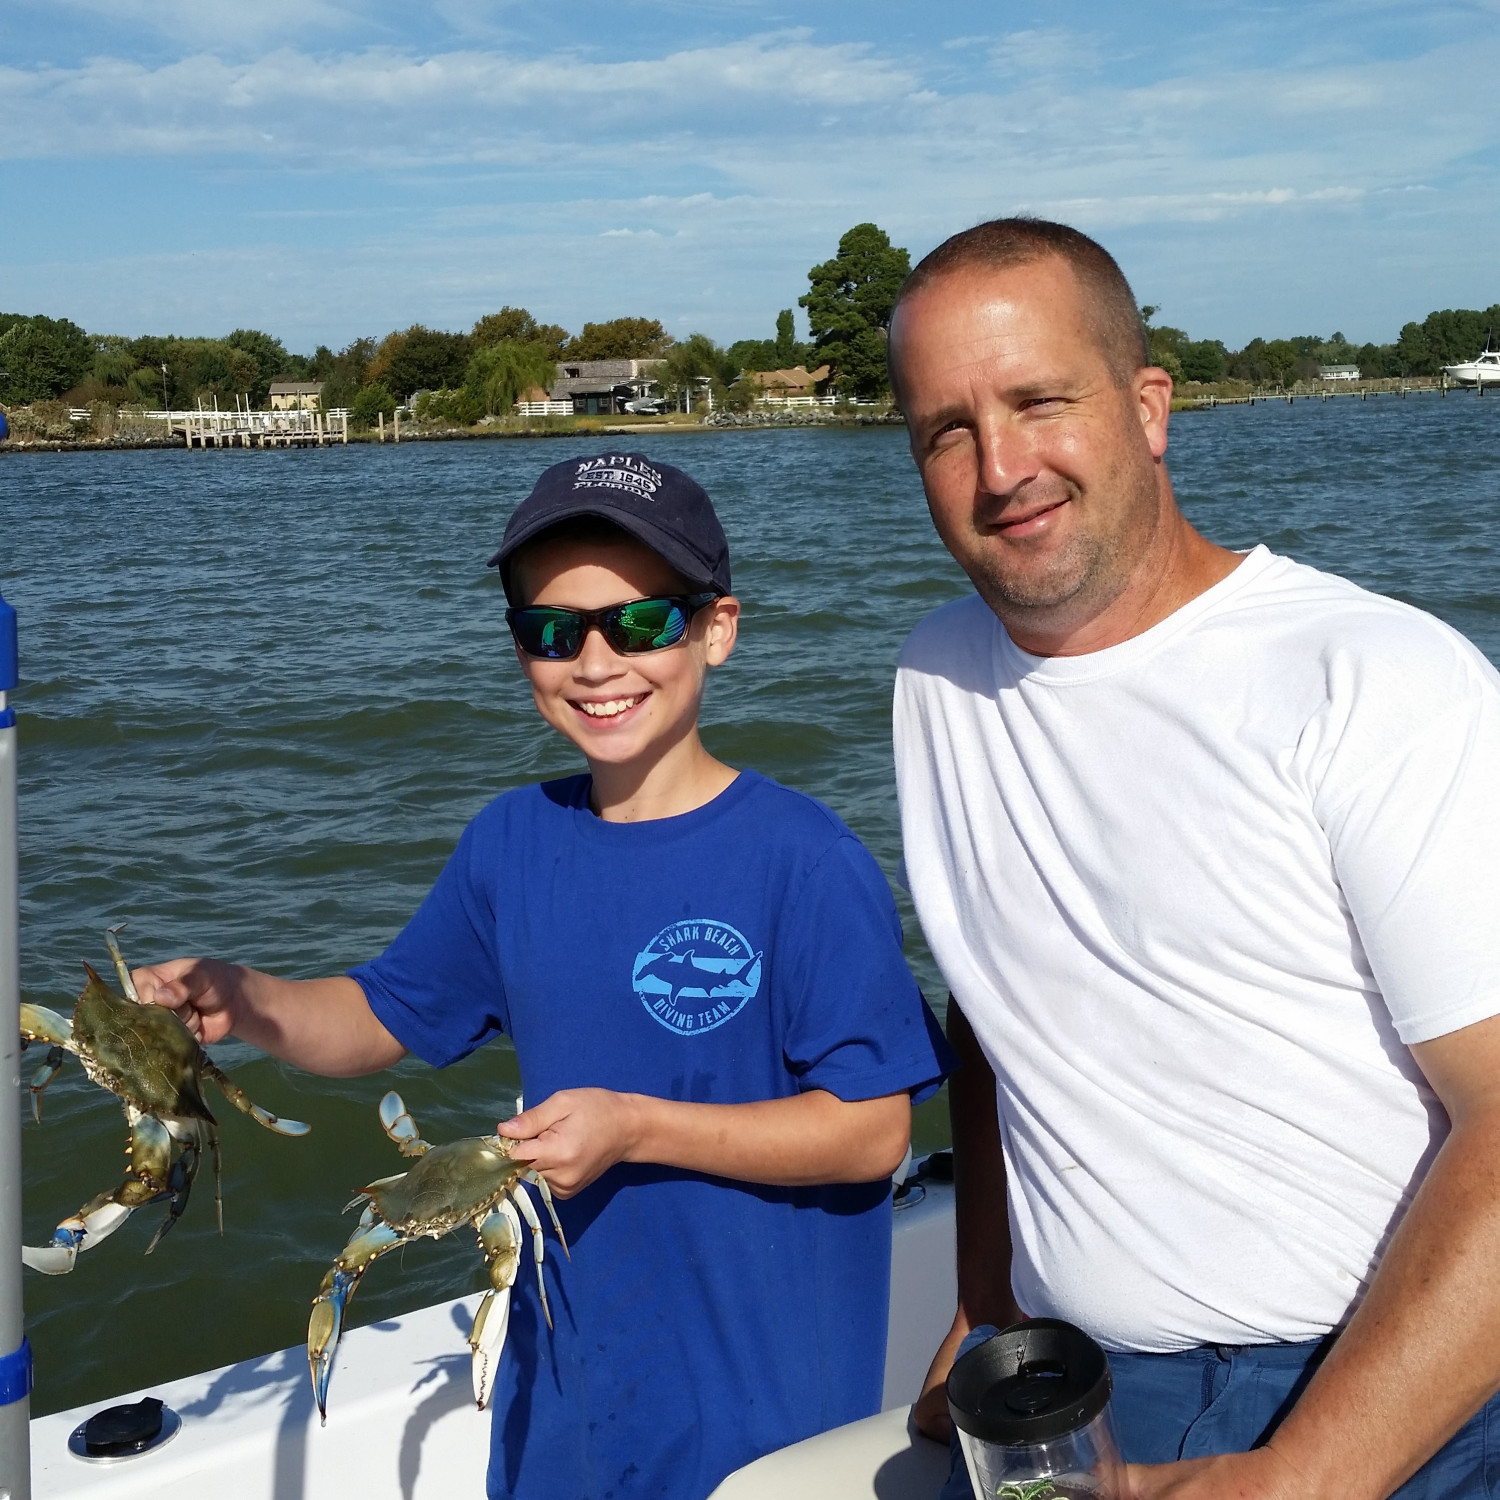 Title: Crabbing on the Bay with the Island Reef - On board their Sportsman Island Reef 19 Center Console - Location: Kent Narrows, MD. Participating in the Photo Contest #SportsmanMarch2018